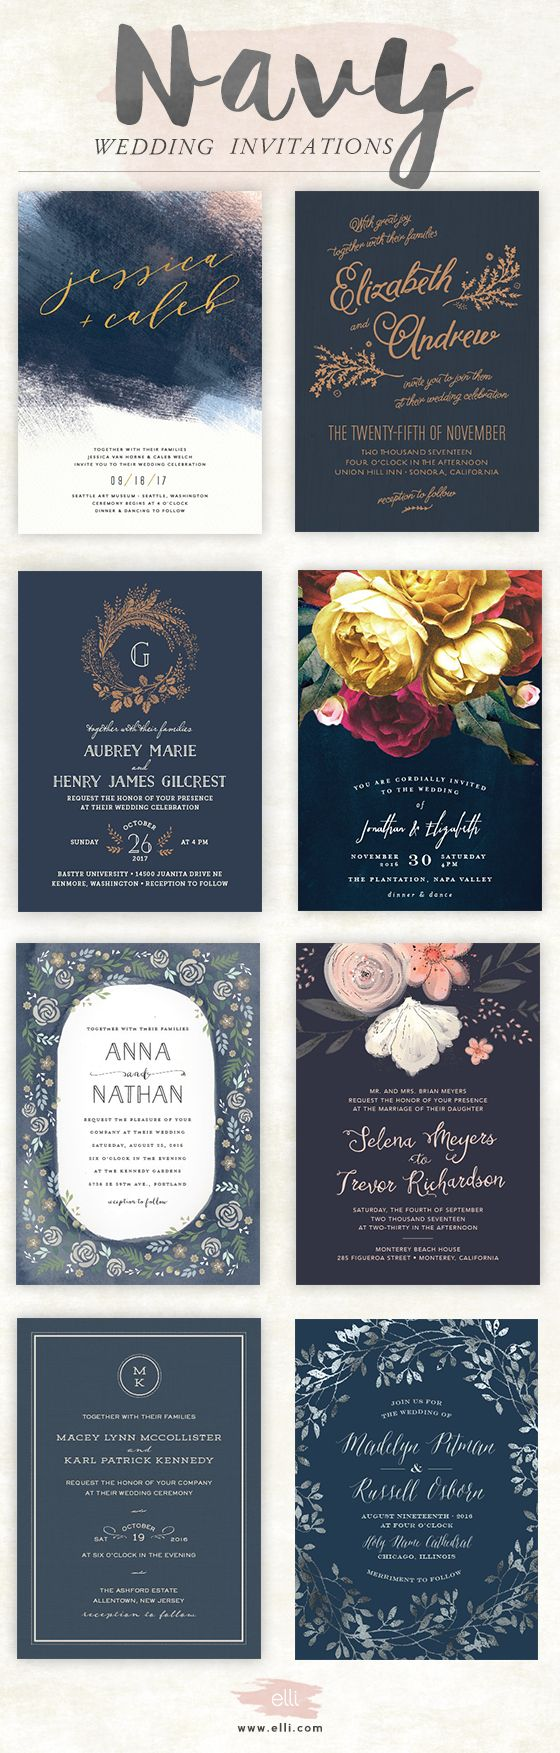 703 best wedding graphic design images on pinterest weddings now trending navy wedding invitations from elli stopboris